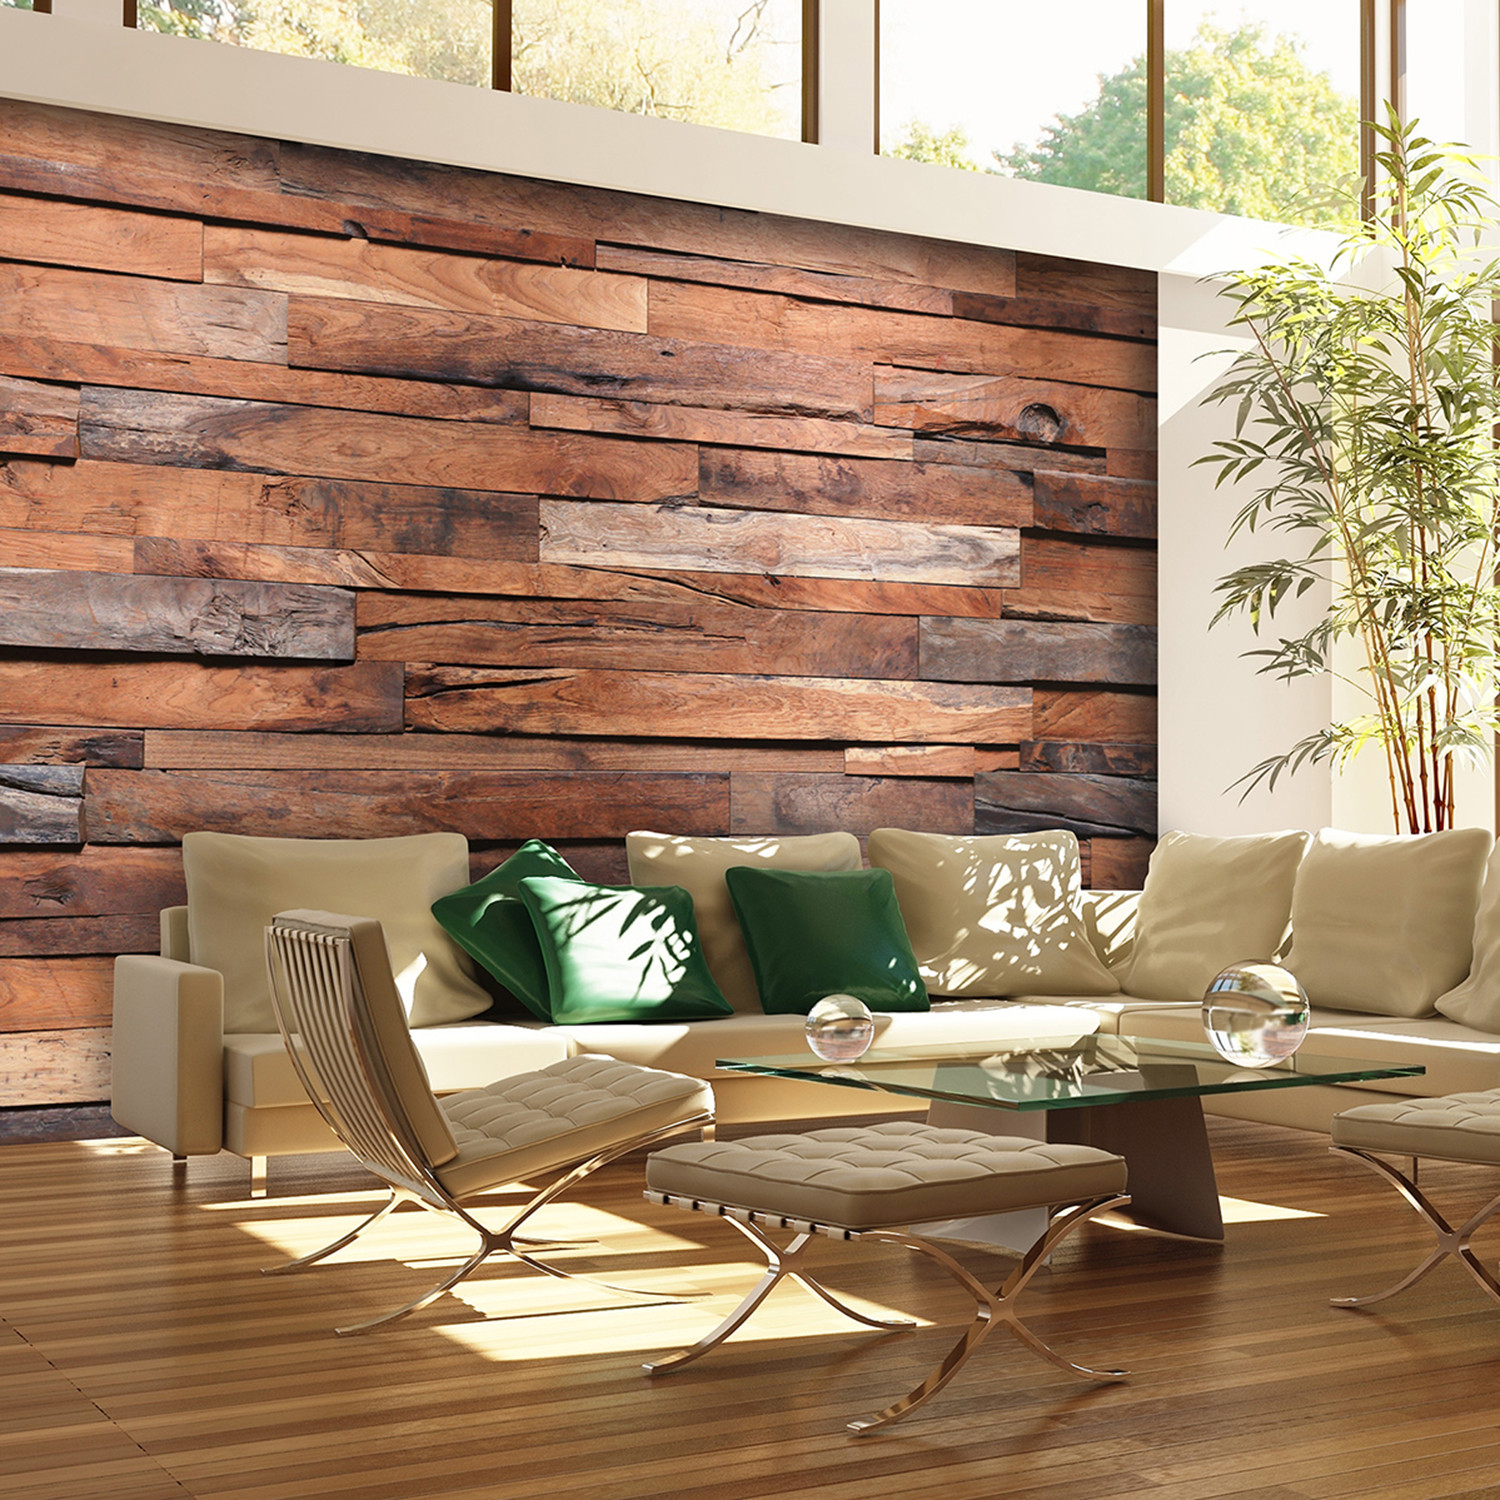 Reclaimed Wood Wall Mural Brewster Home Fashions Touch of Modern